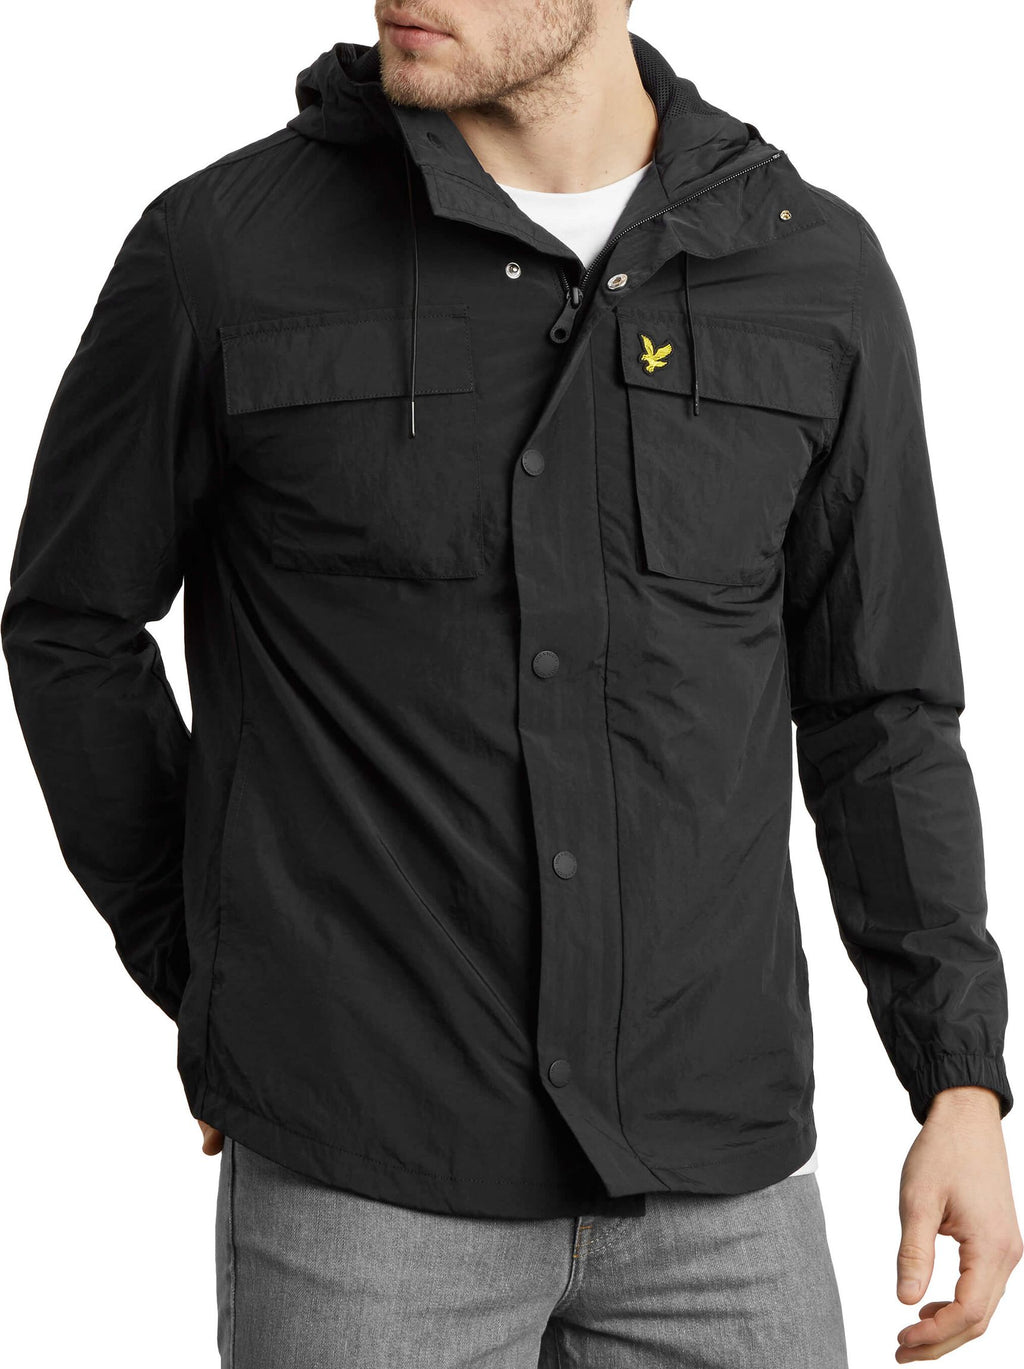 Lyle & Scott Pocket Jacket Black